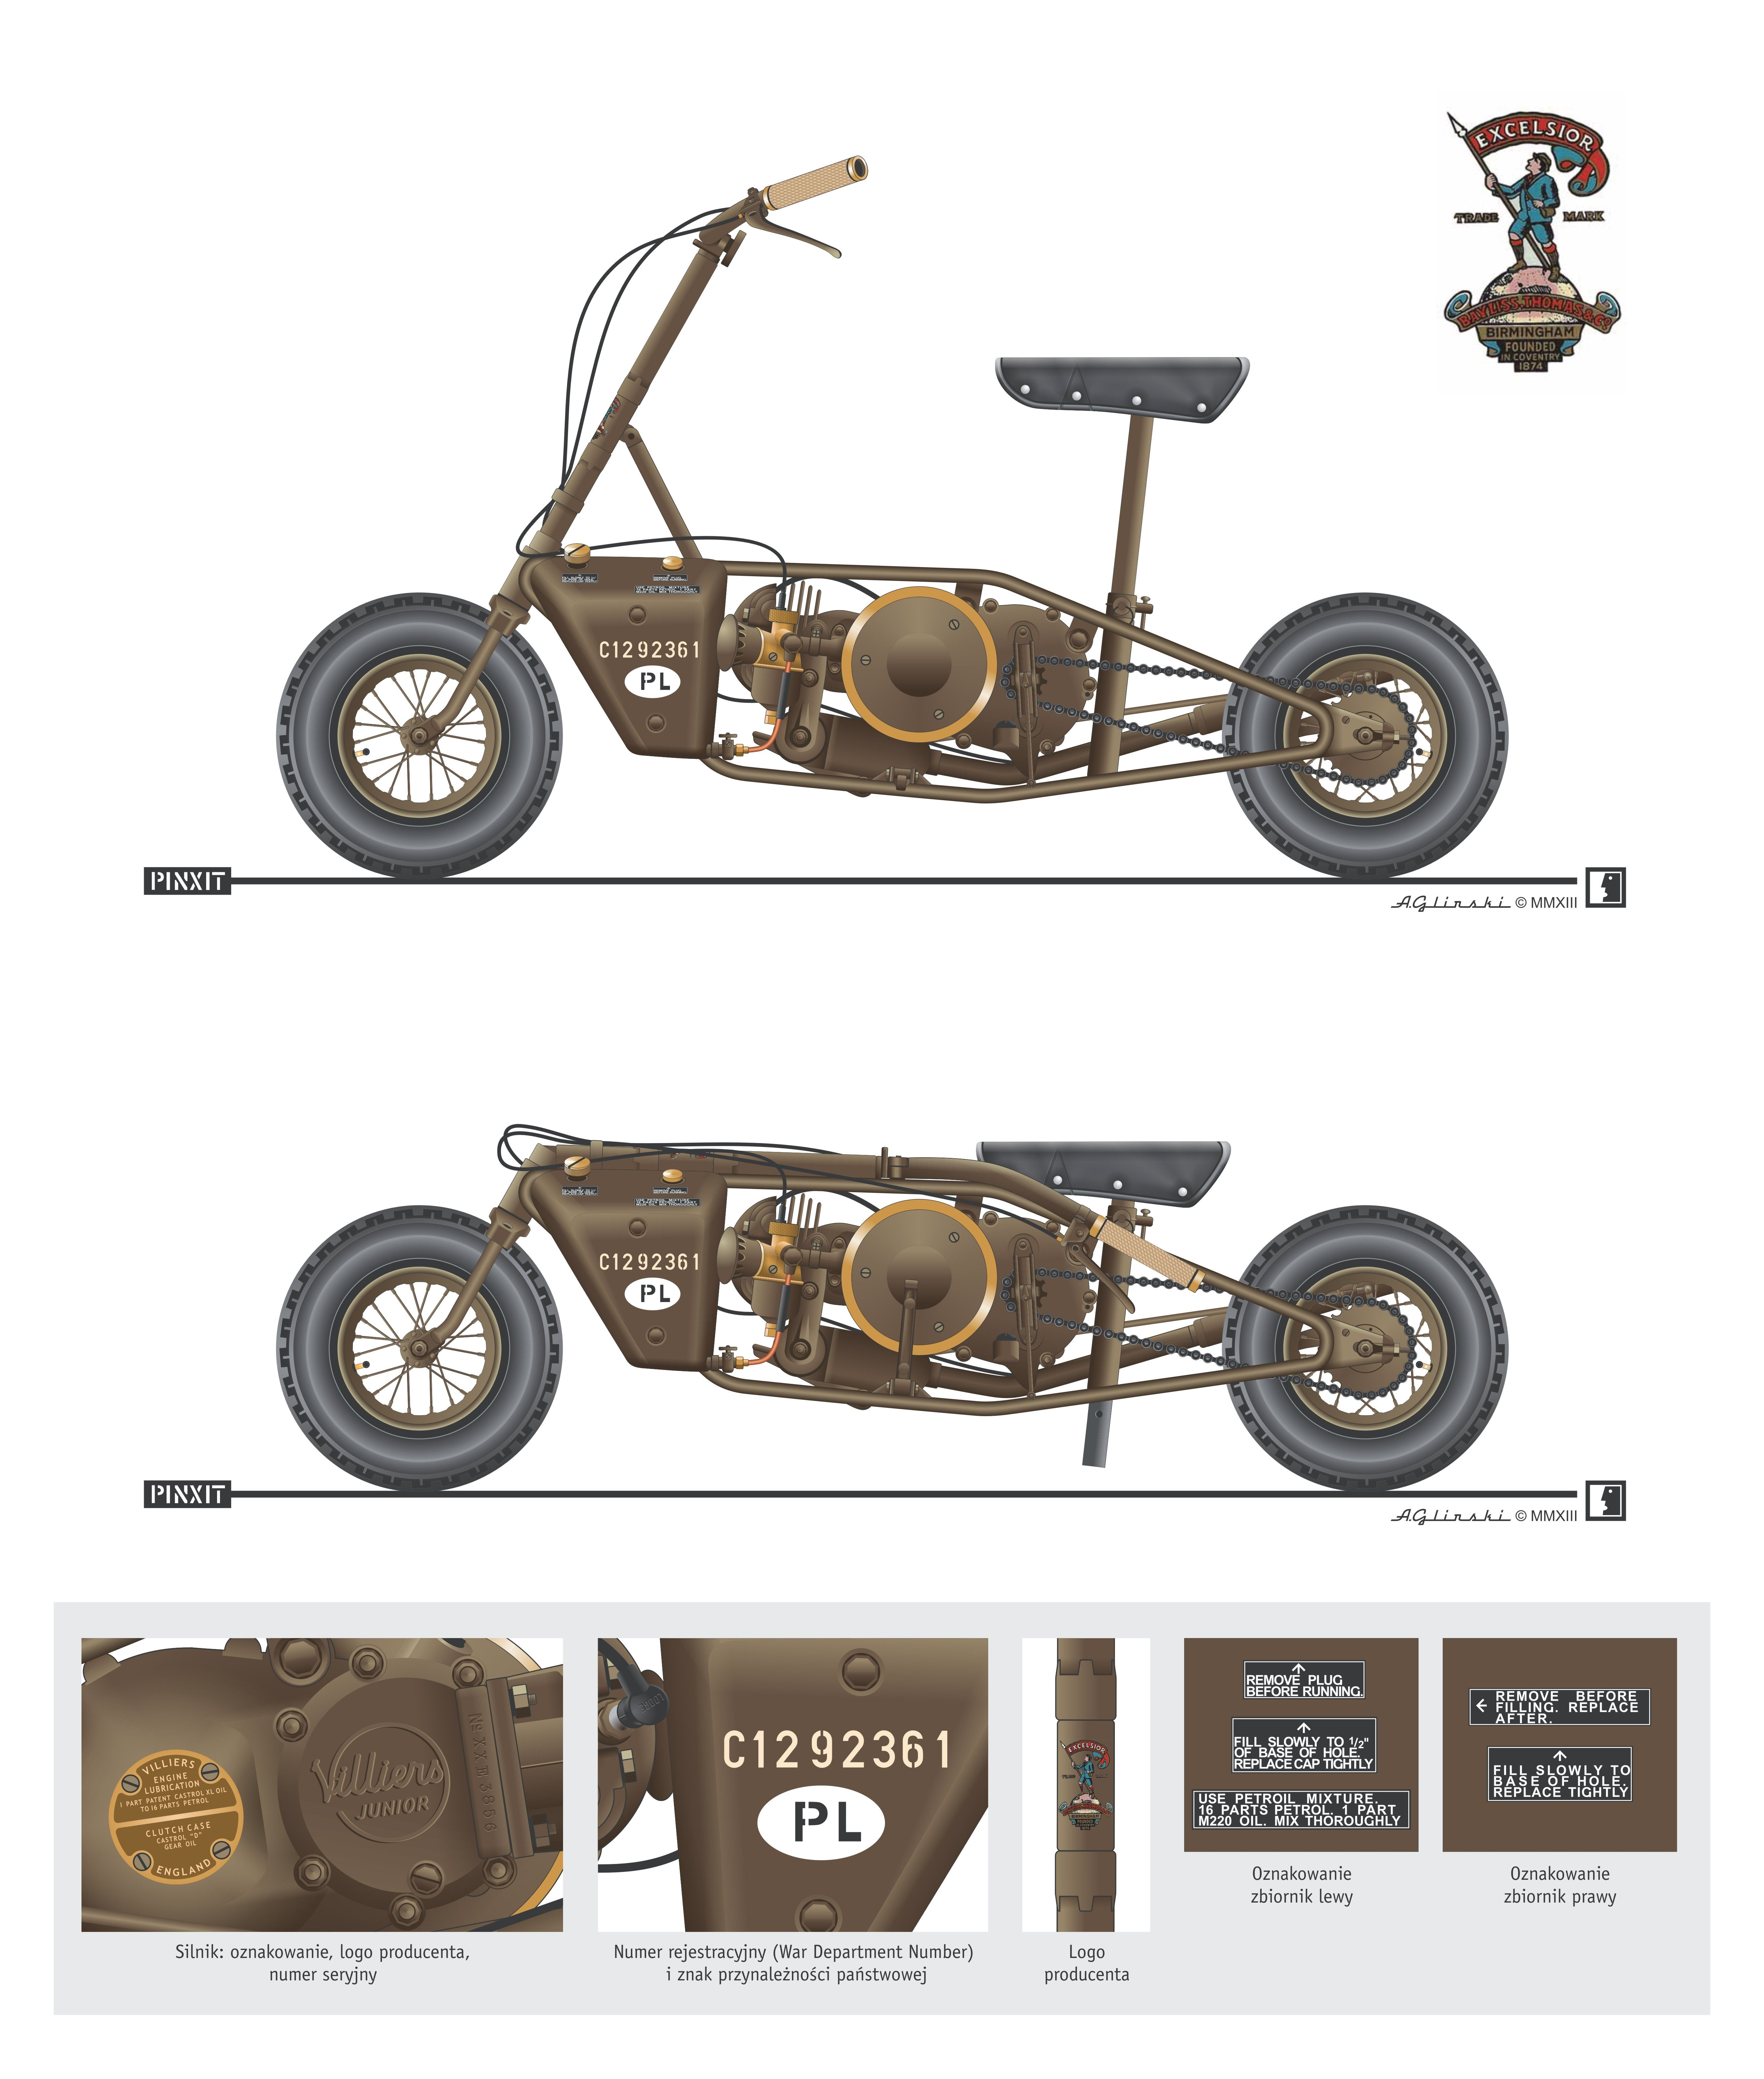 Excelsior Welbike 98 Cc Parascooter 1st Polish Independent Parachute Brigade 1941 1947 Colour Plate Rys A Military Motorcycle Mini Bike Mini Bike Custom